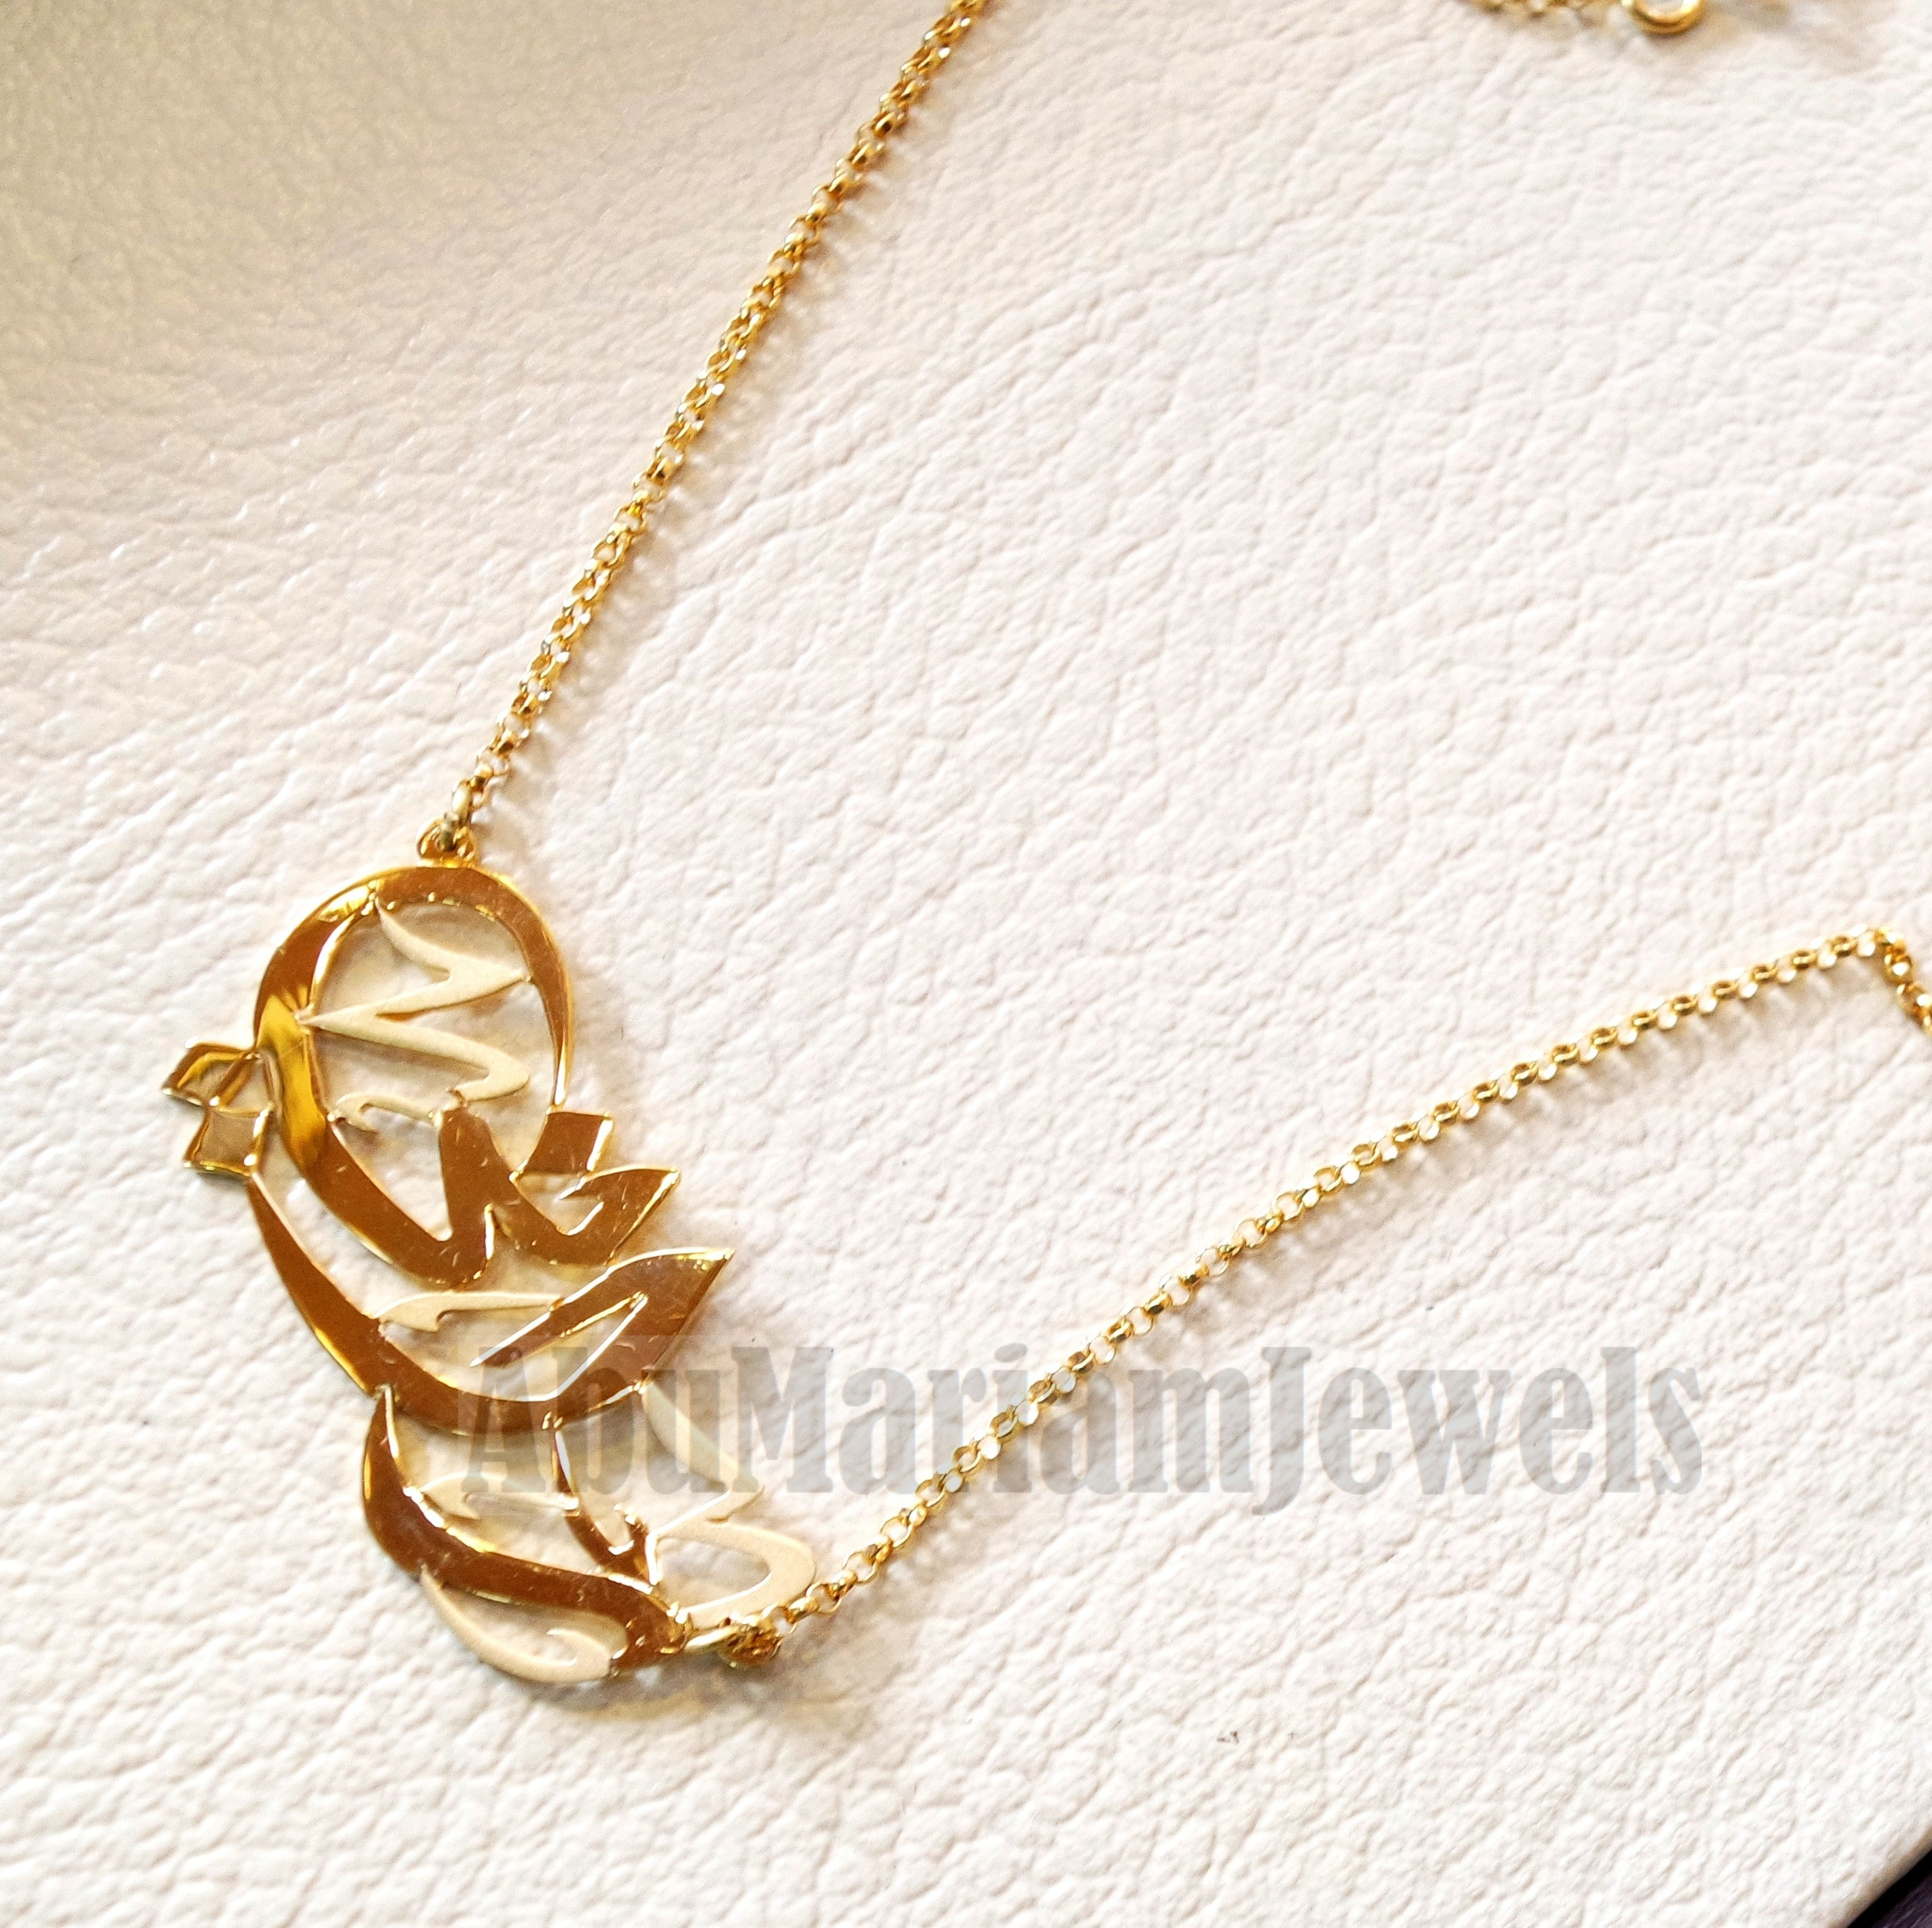 pendant initial bridesmaid jewelry disc product personalized gift charm gold original necklace letter